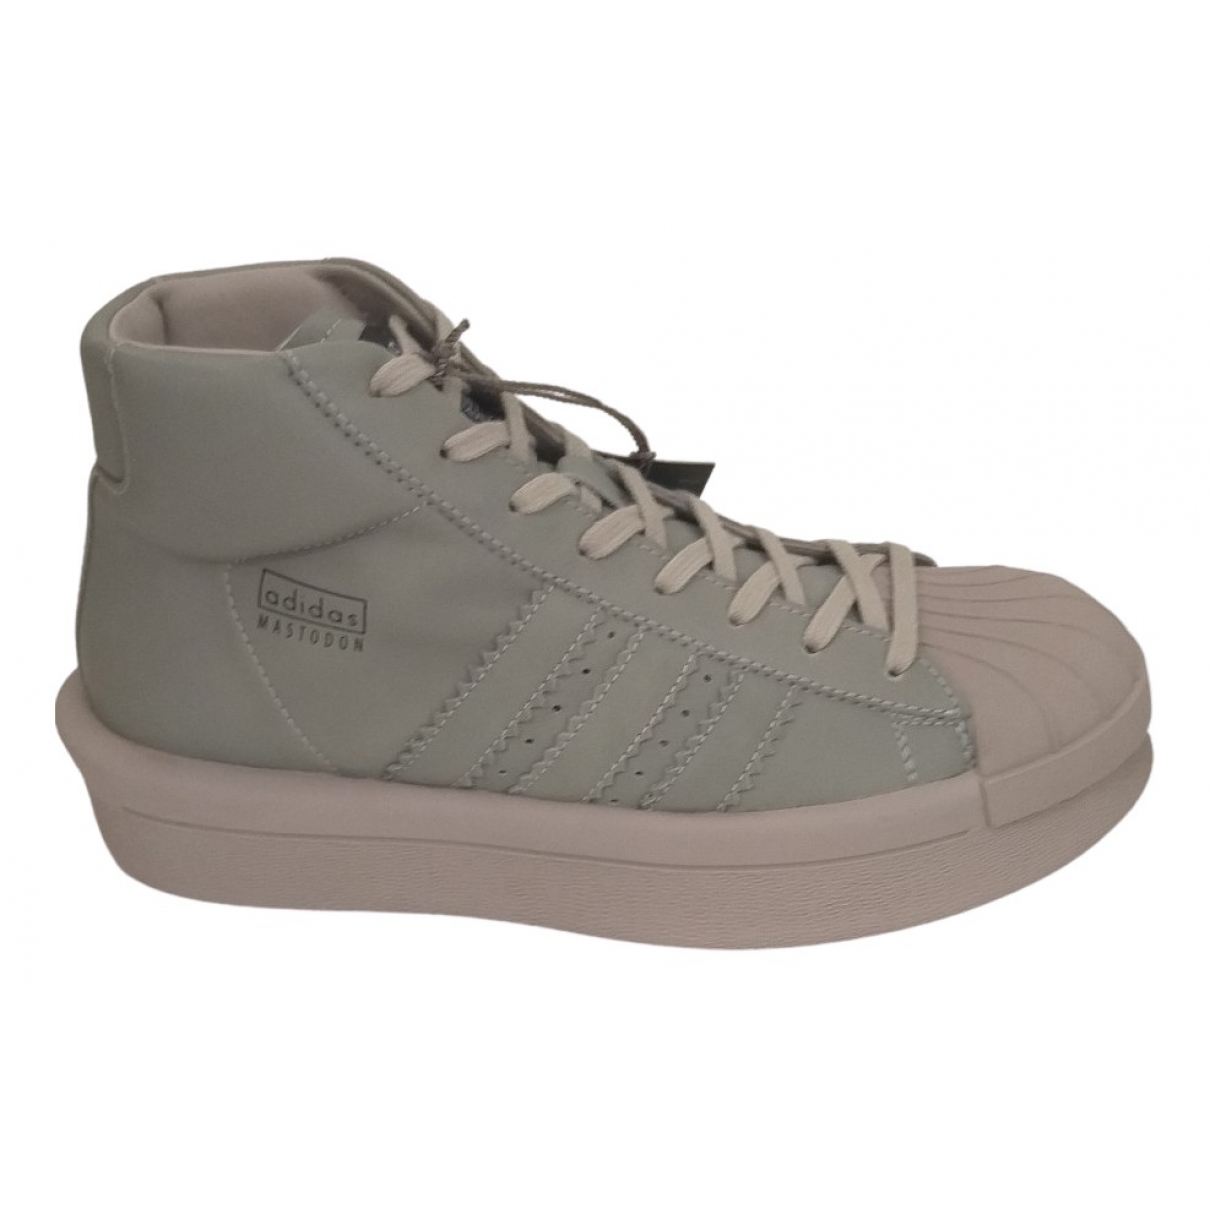 Adidas & Rick Owens N Grey Leather Trainers for Men 8 US